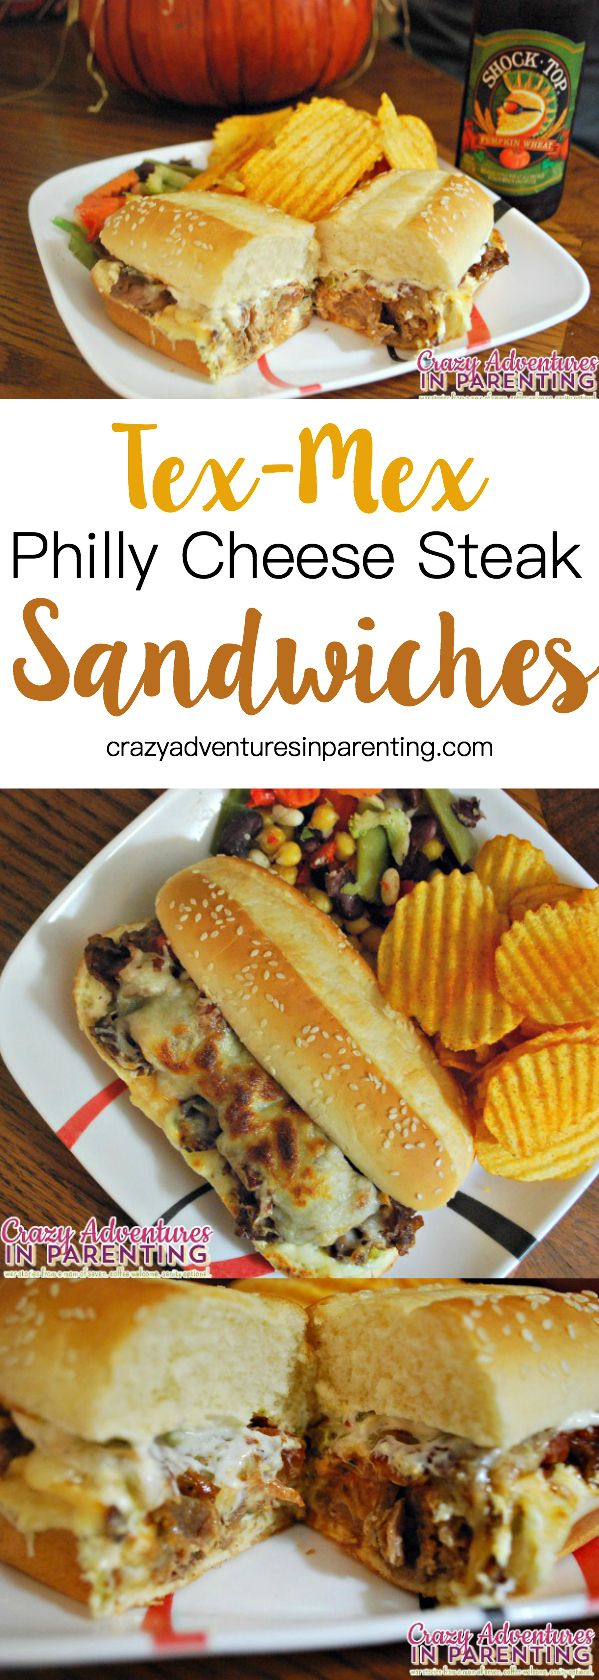 Tex-Mex Philly Cheese Steak Sandwiches